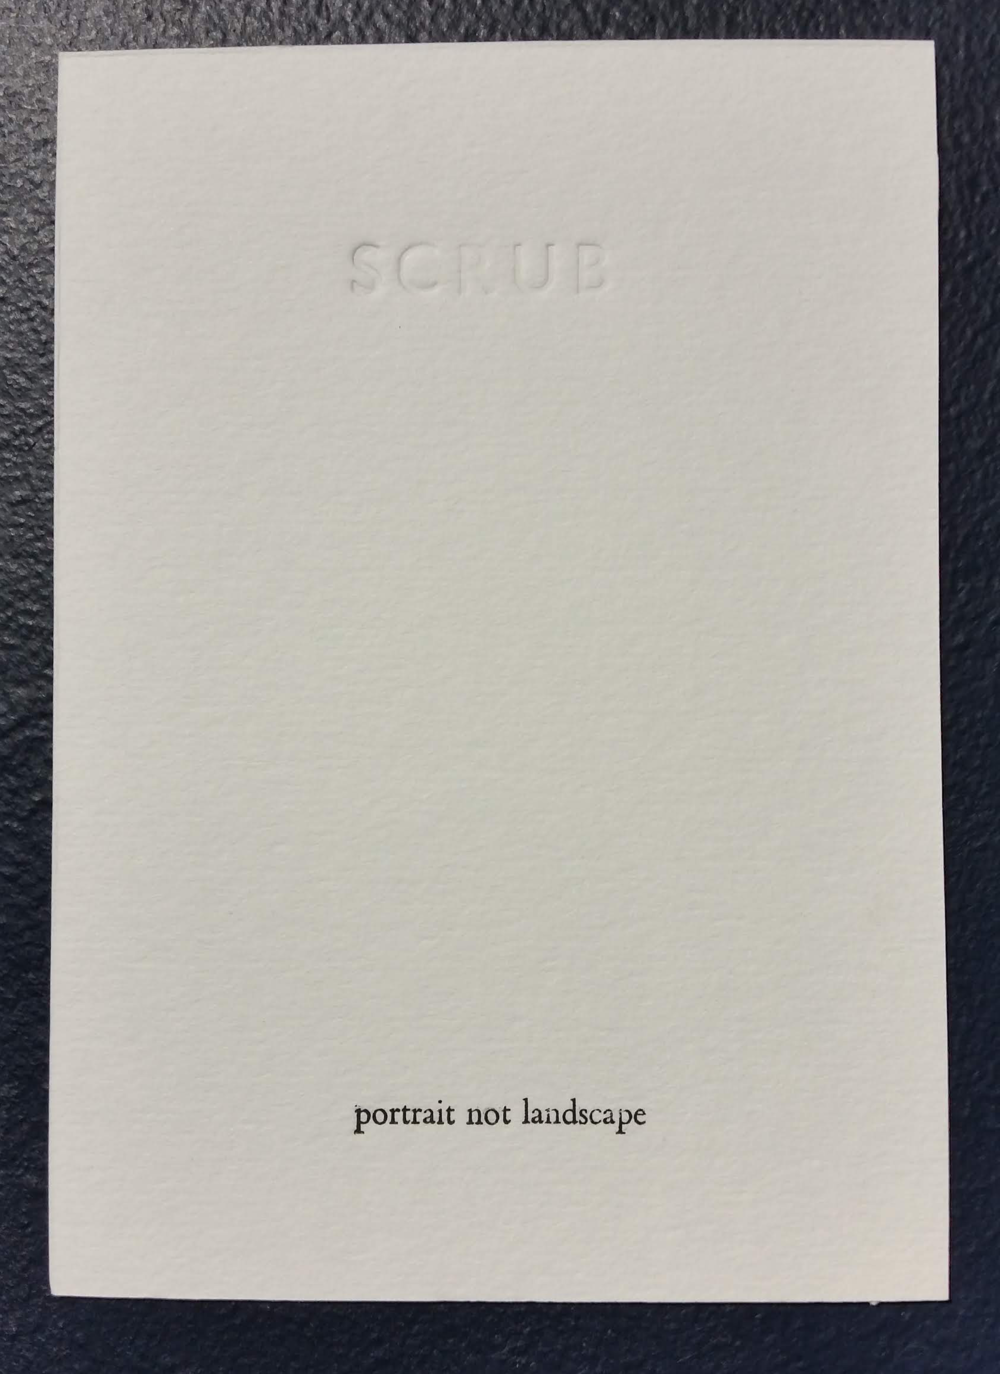 SCRUB poem cards (2018) by Caroline Harris